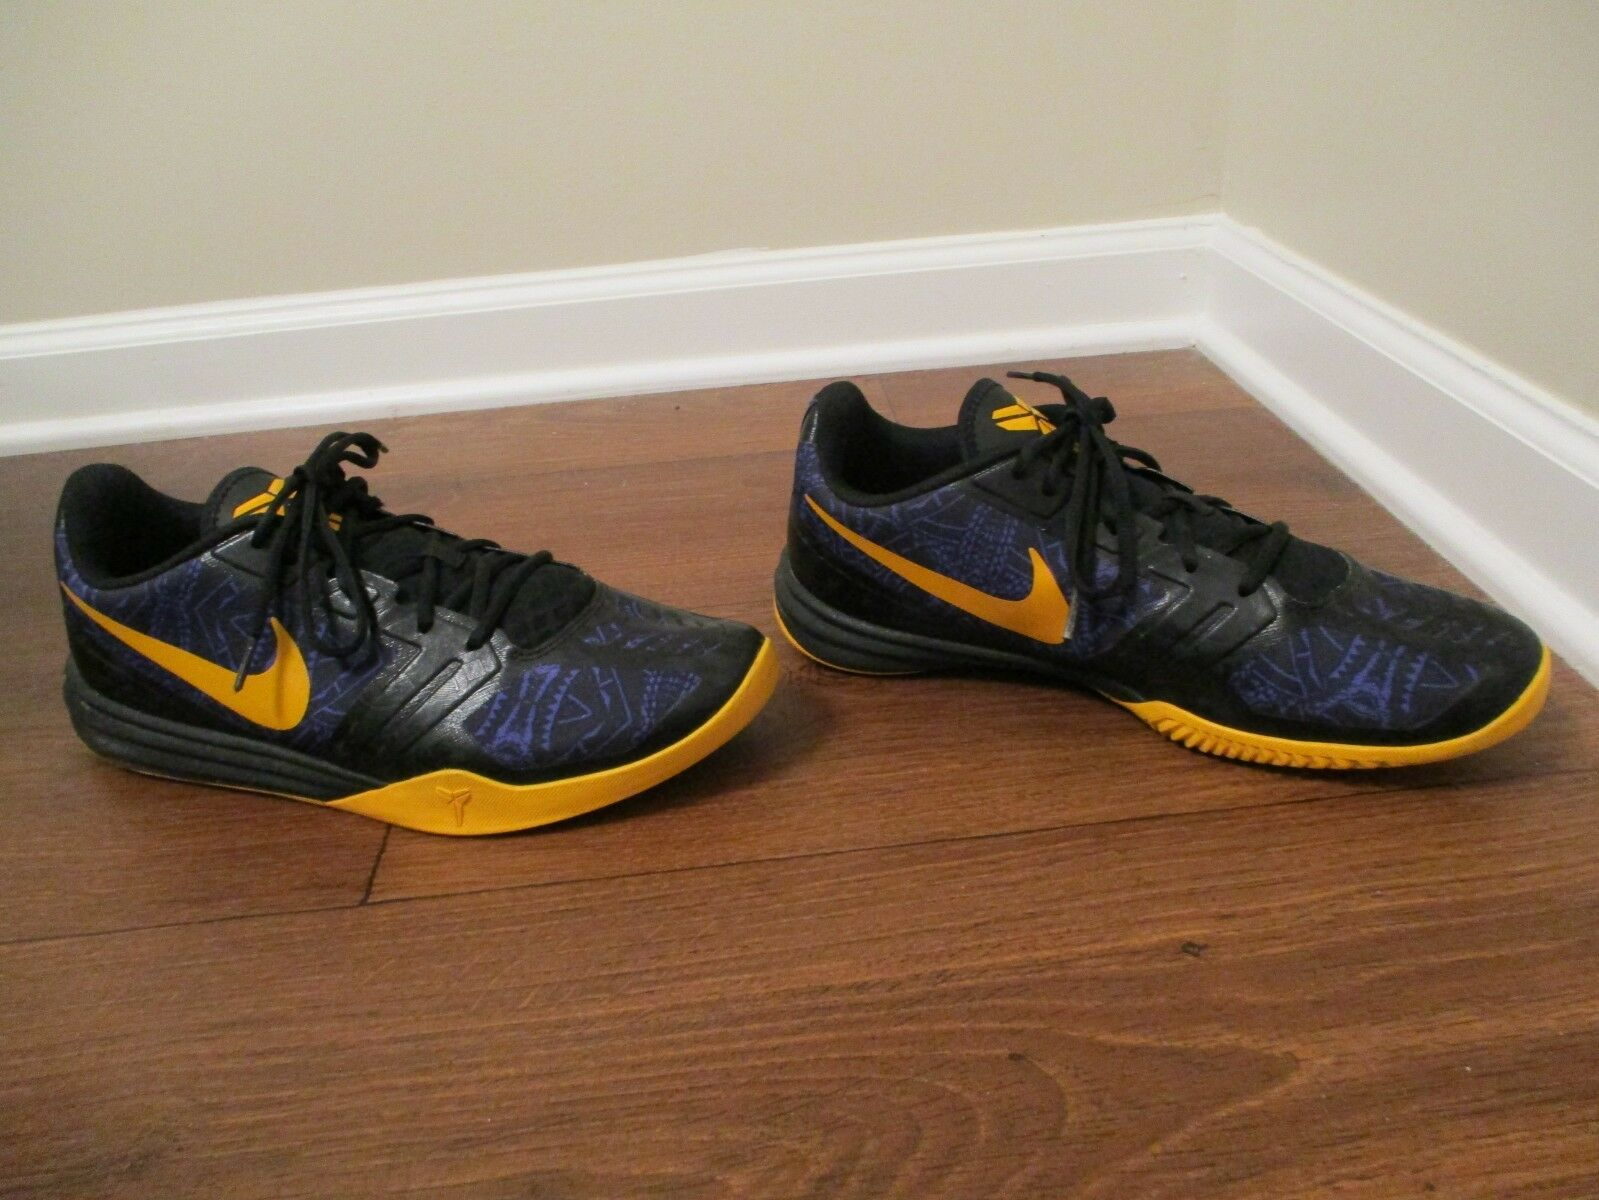 Used Worn Size 12 Nike KB Mentality shoes Persian purple, University gold, Black